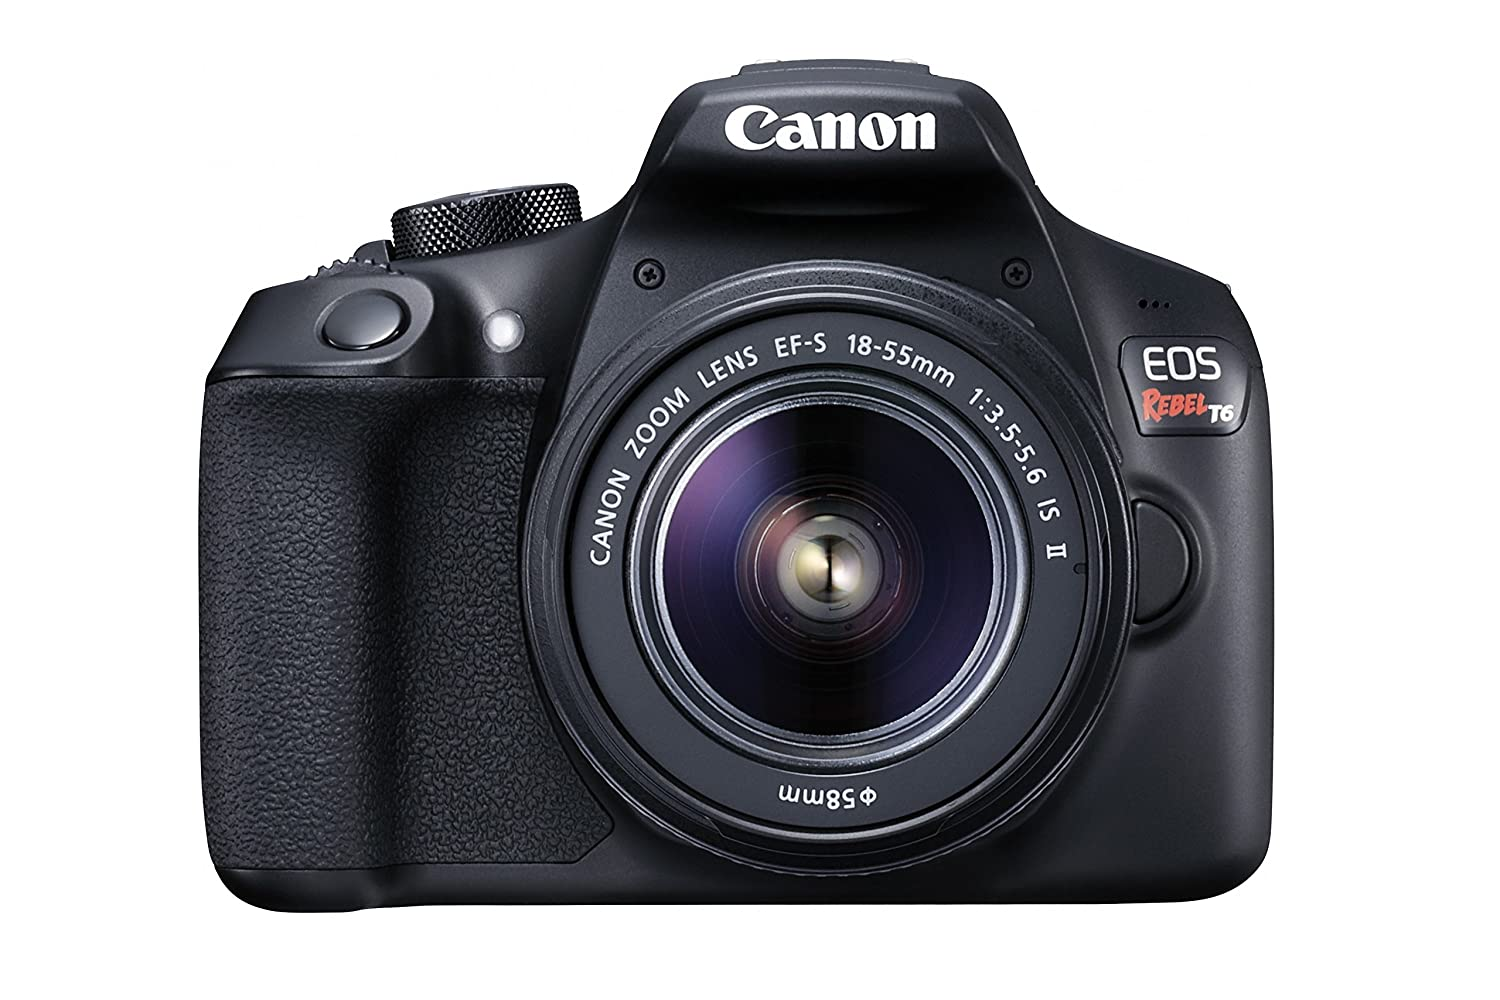 Canon-EOS-Rebel-T6-Digital-SLR-Camera-Kit-with-EF-S-18-55mm-f-3-5-5-6-IS-II-Lens-Black-